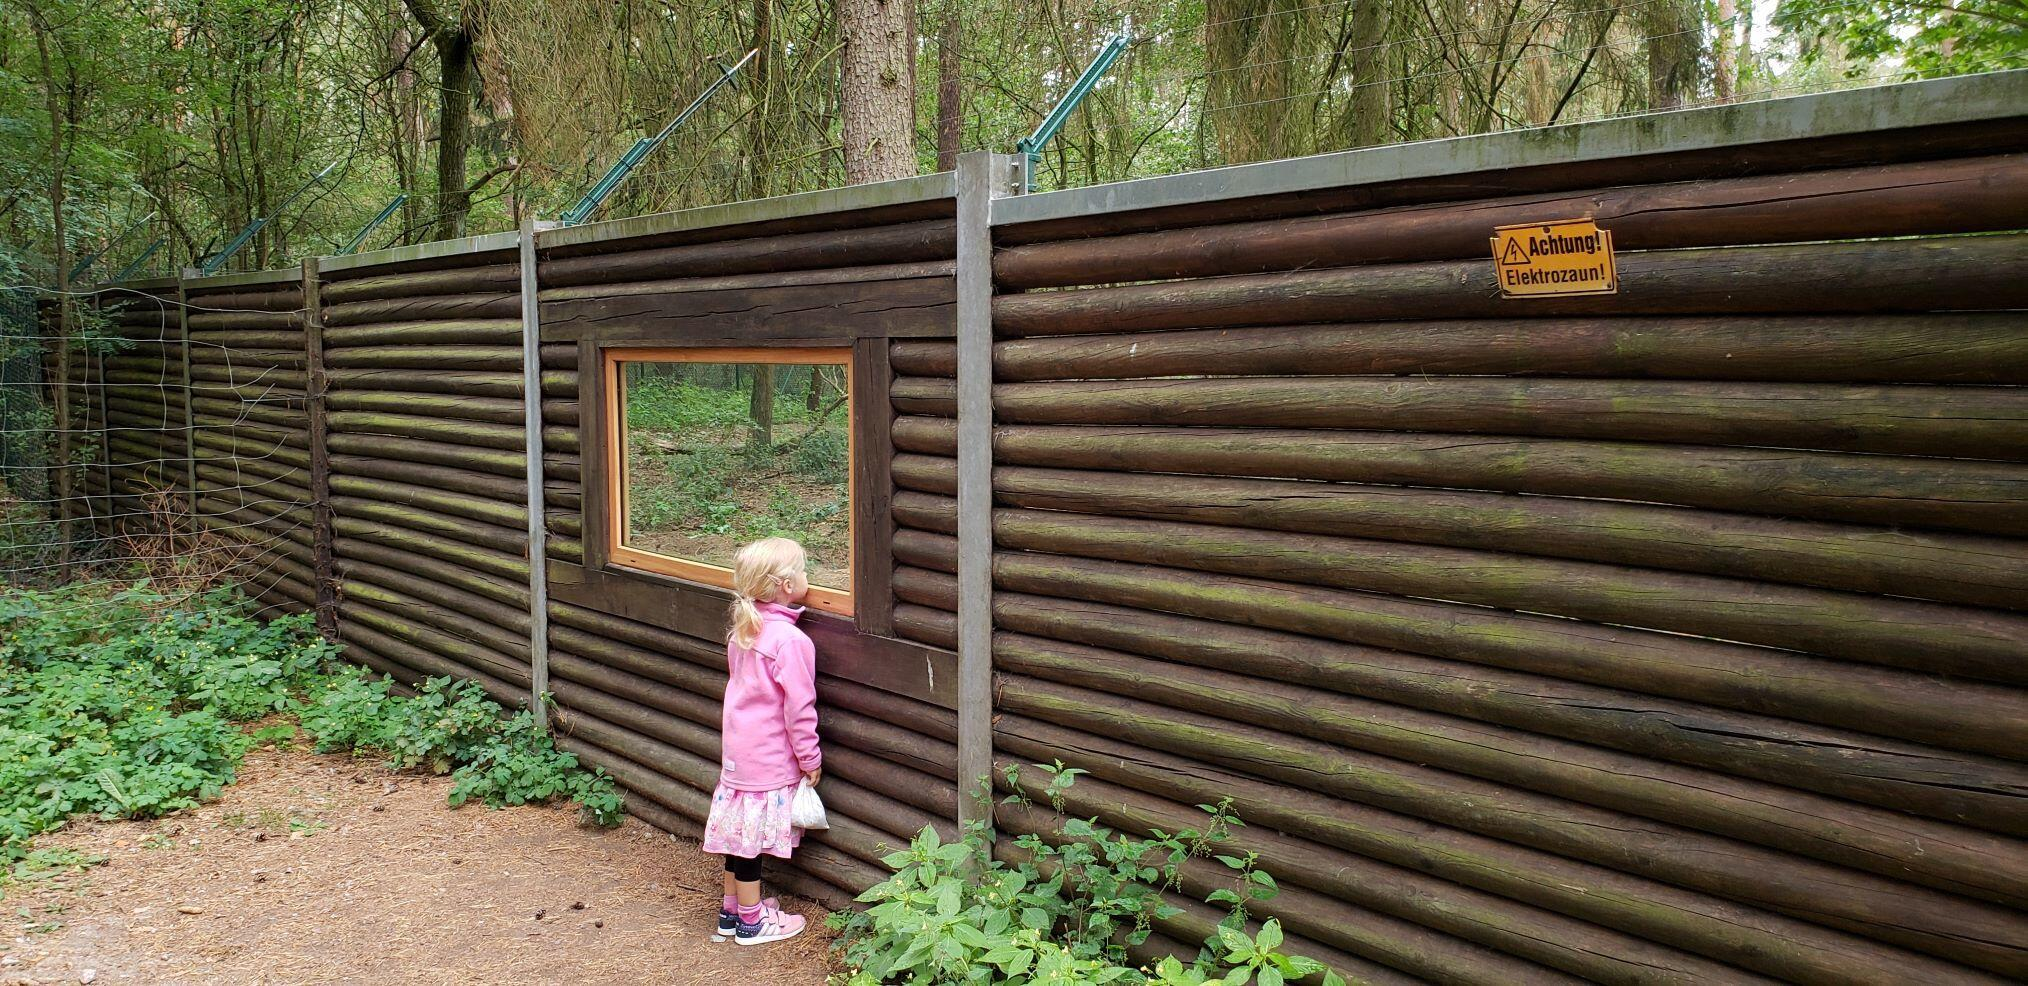 Holger's granddaughter looks into the wolf enclosure at the Perleberg Zoo in Brandenburg, Germany © Chris Bolgiano